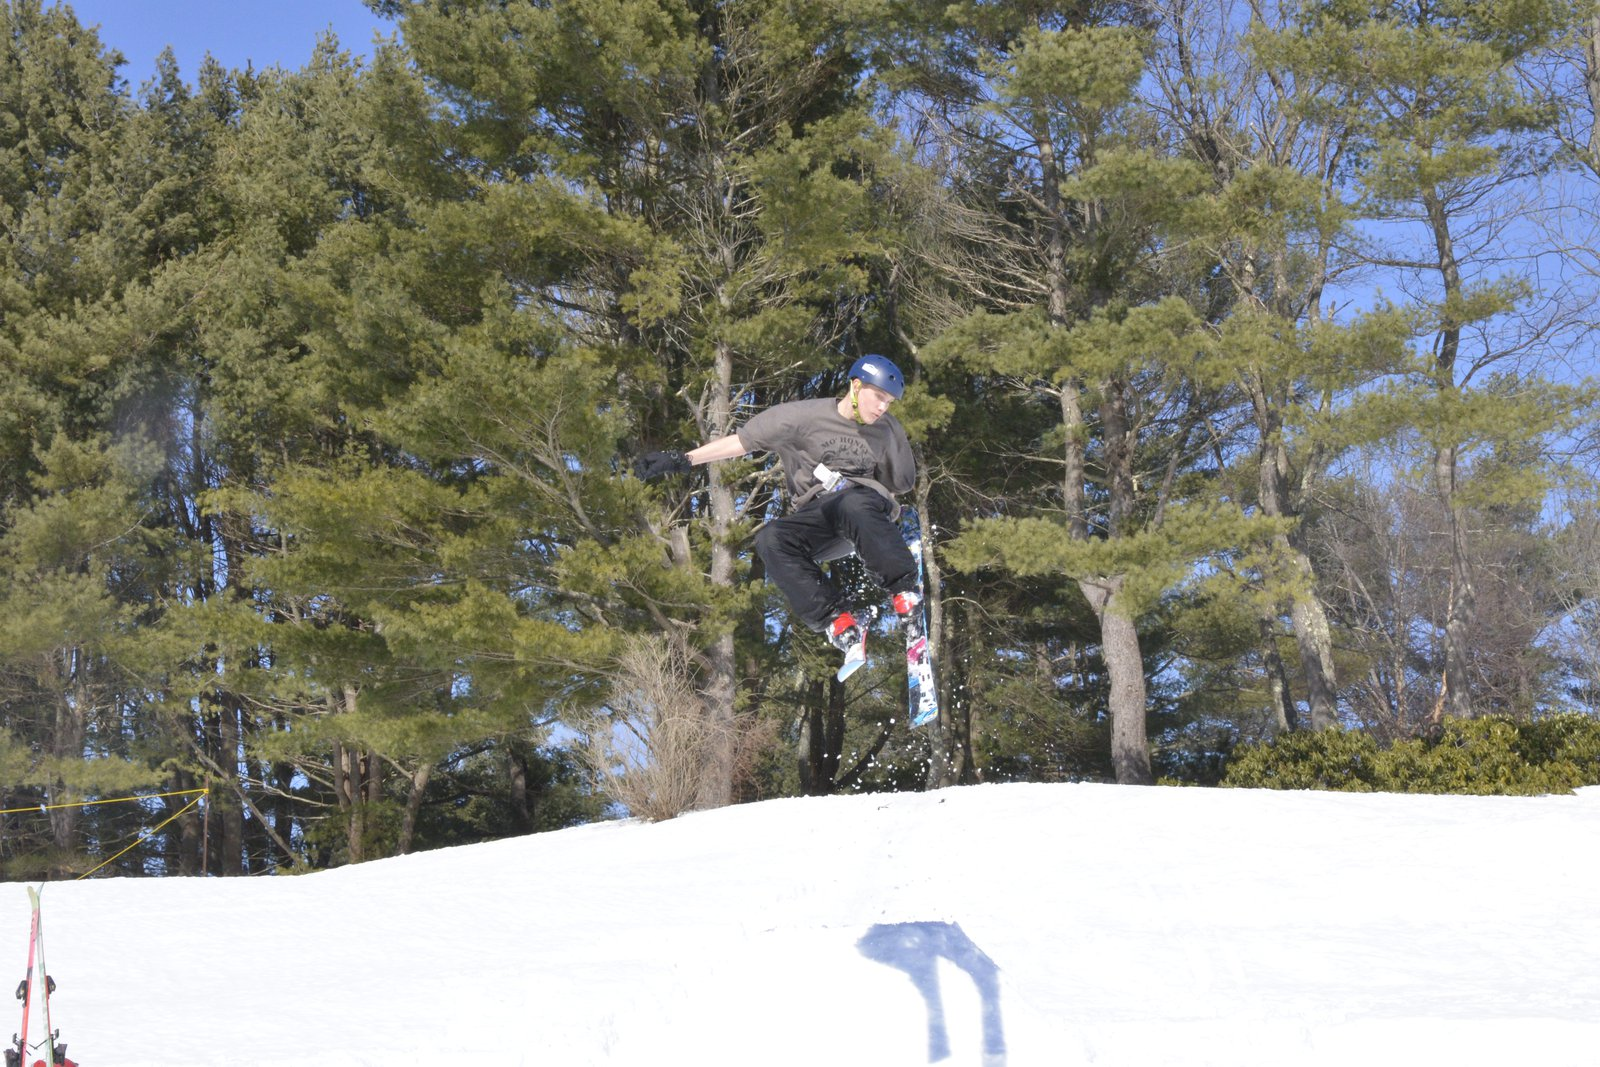 Little tail grab